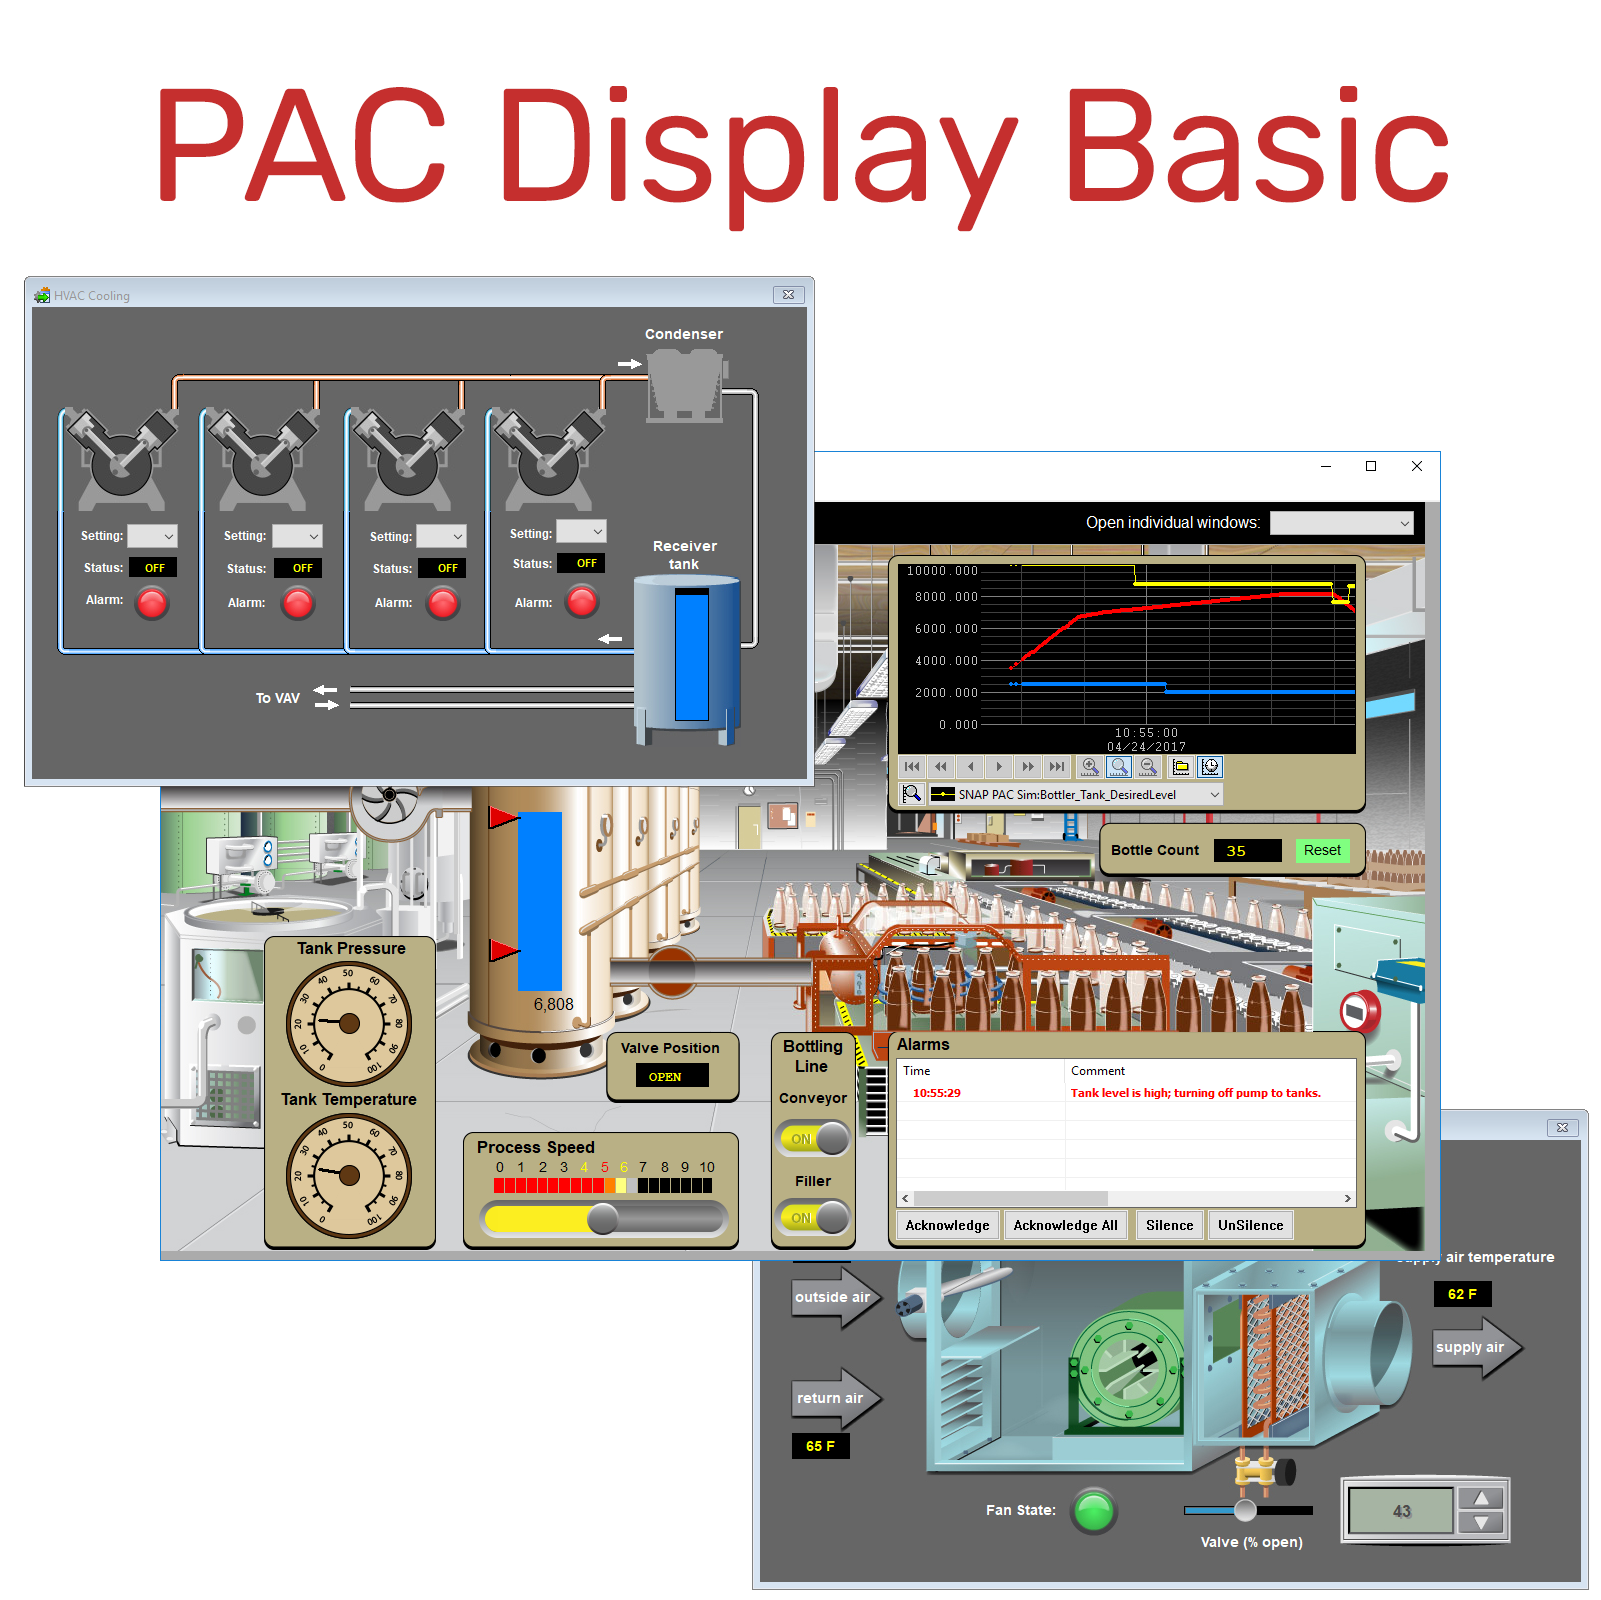 Opto22 Pacdisplaybas Pac Display Basic Hmi Development And Ultimate Electronics Guide Build Electronic Circuits